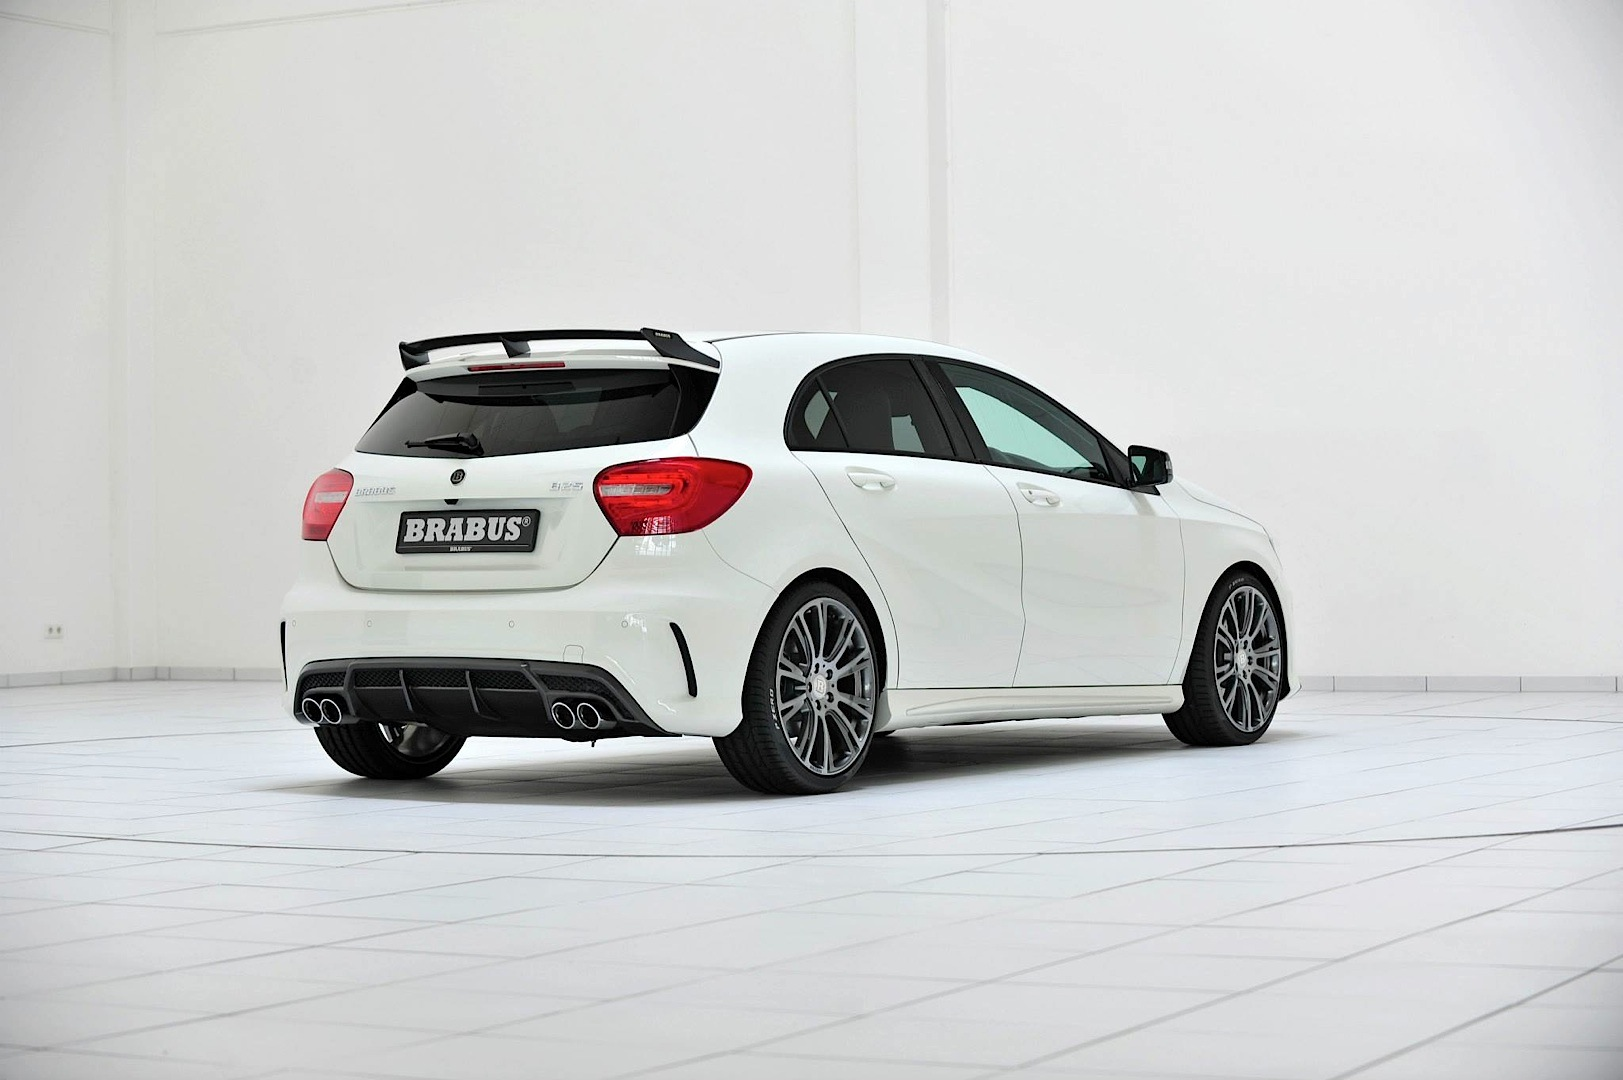 Brabus tunes the mercedes benz a250 cgi autoevolution for Mercedes benz employee salary